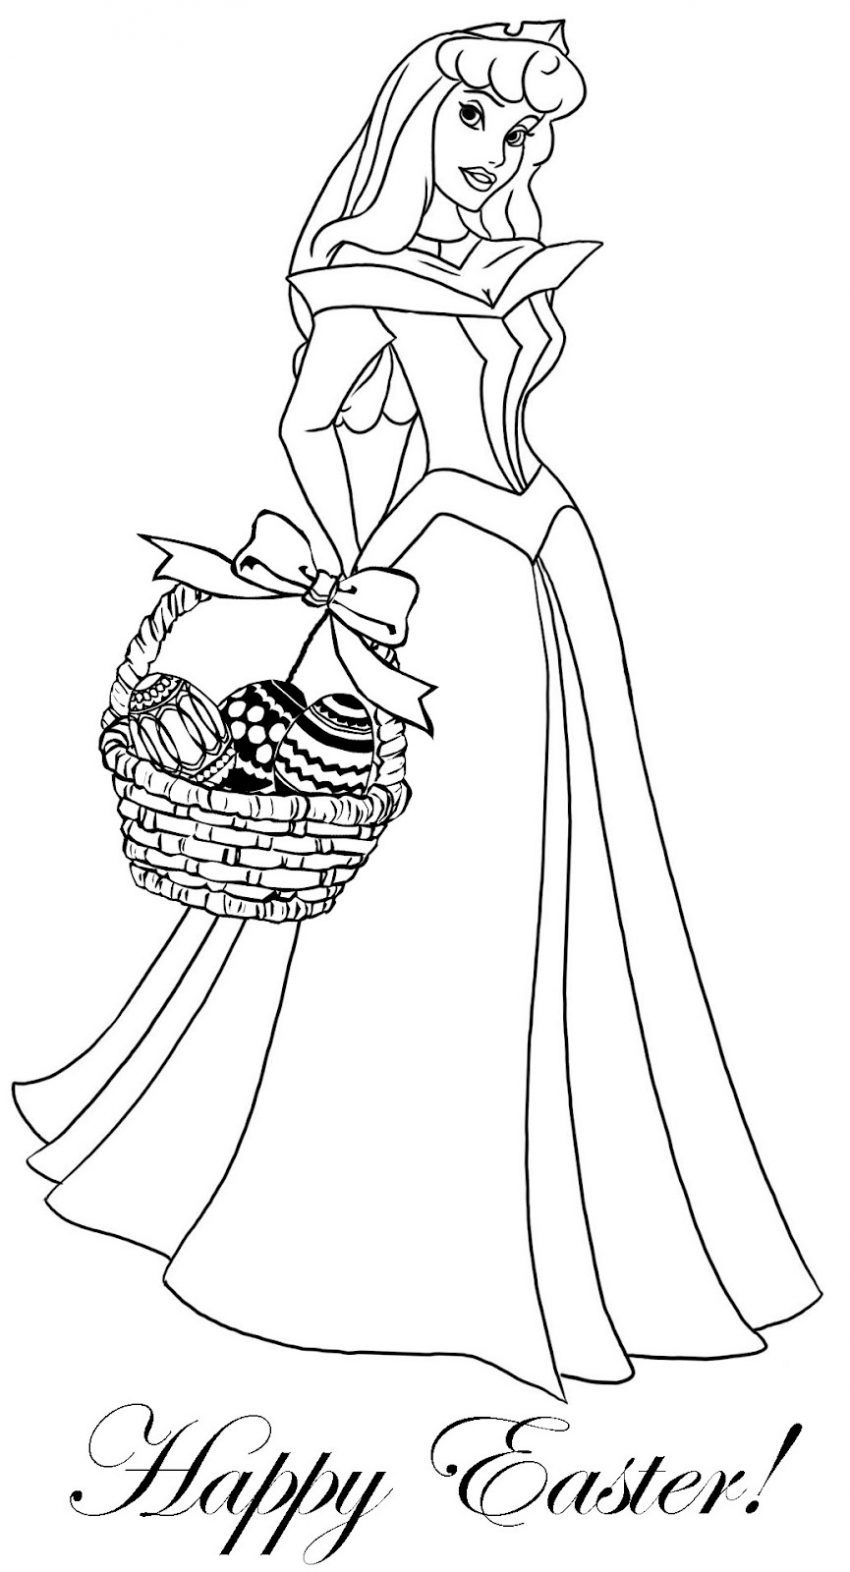 Disney Coloring Pages Aurora Easter Coloringareas Com Princess Coloring Pages Disney Coloring Pages Easter Coloring Pages